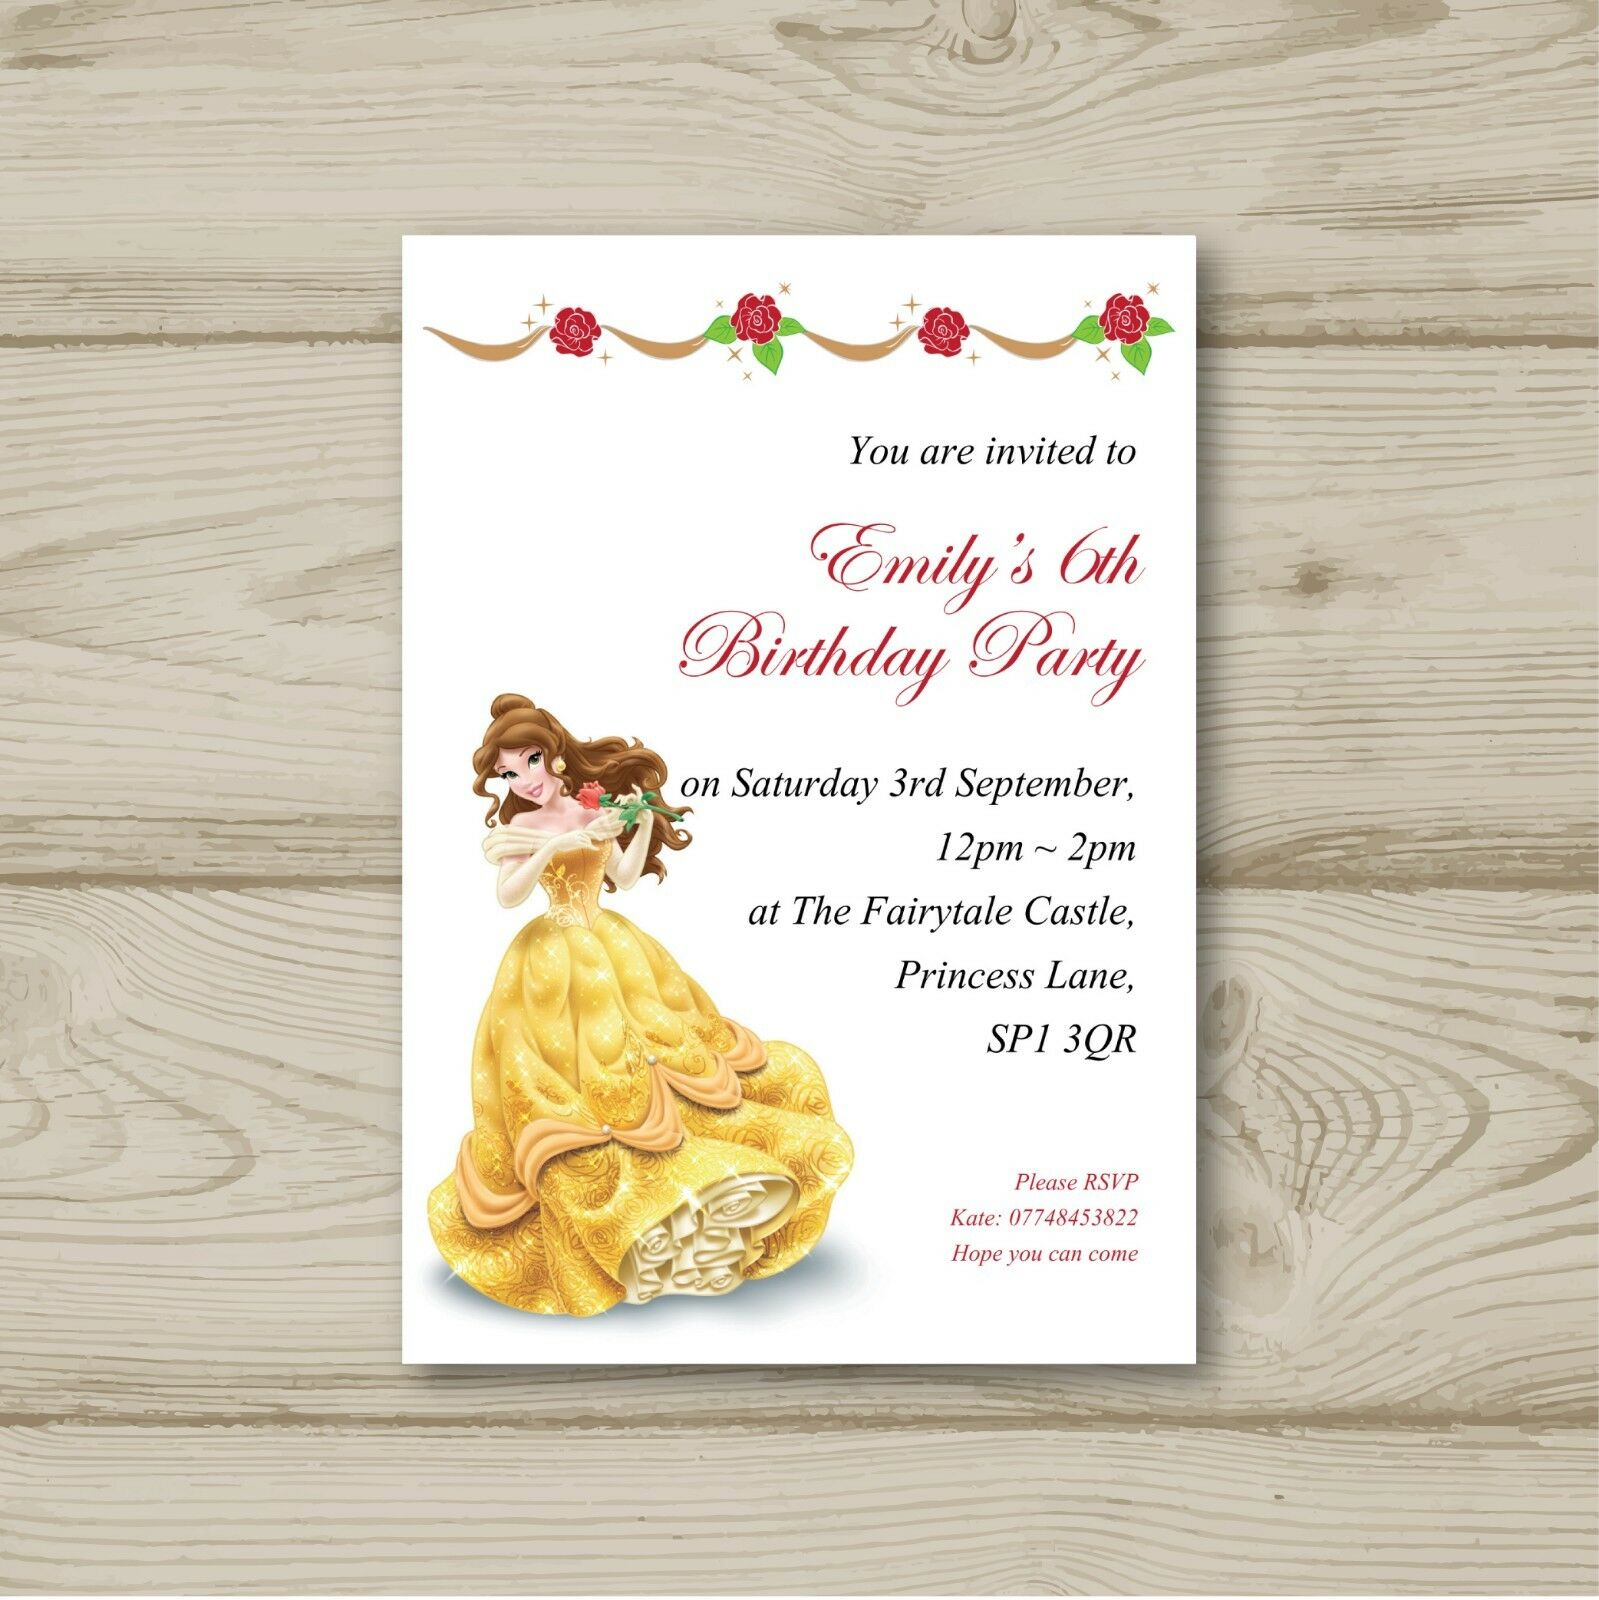 DISNEY PRINCESS BELLE Birthday Party Invitations Beauty and the ...